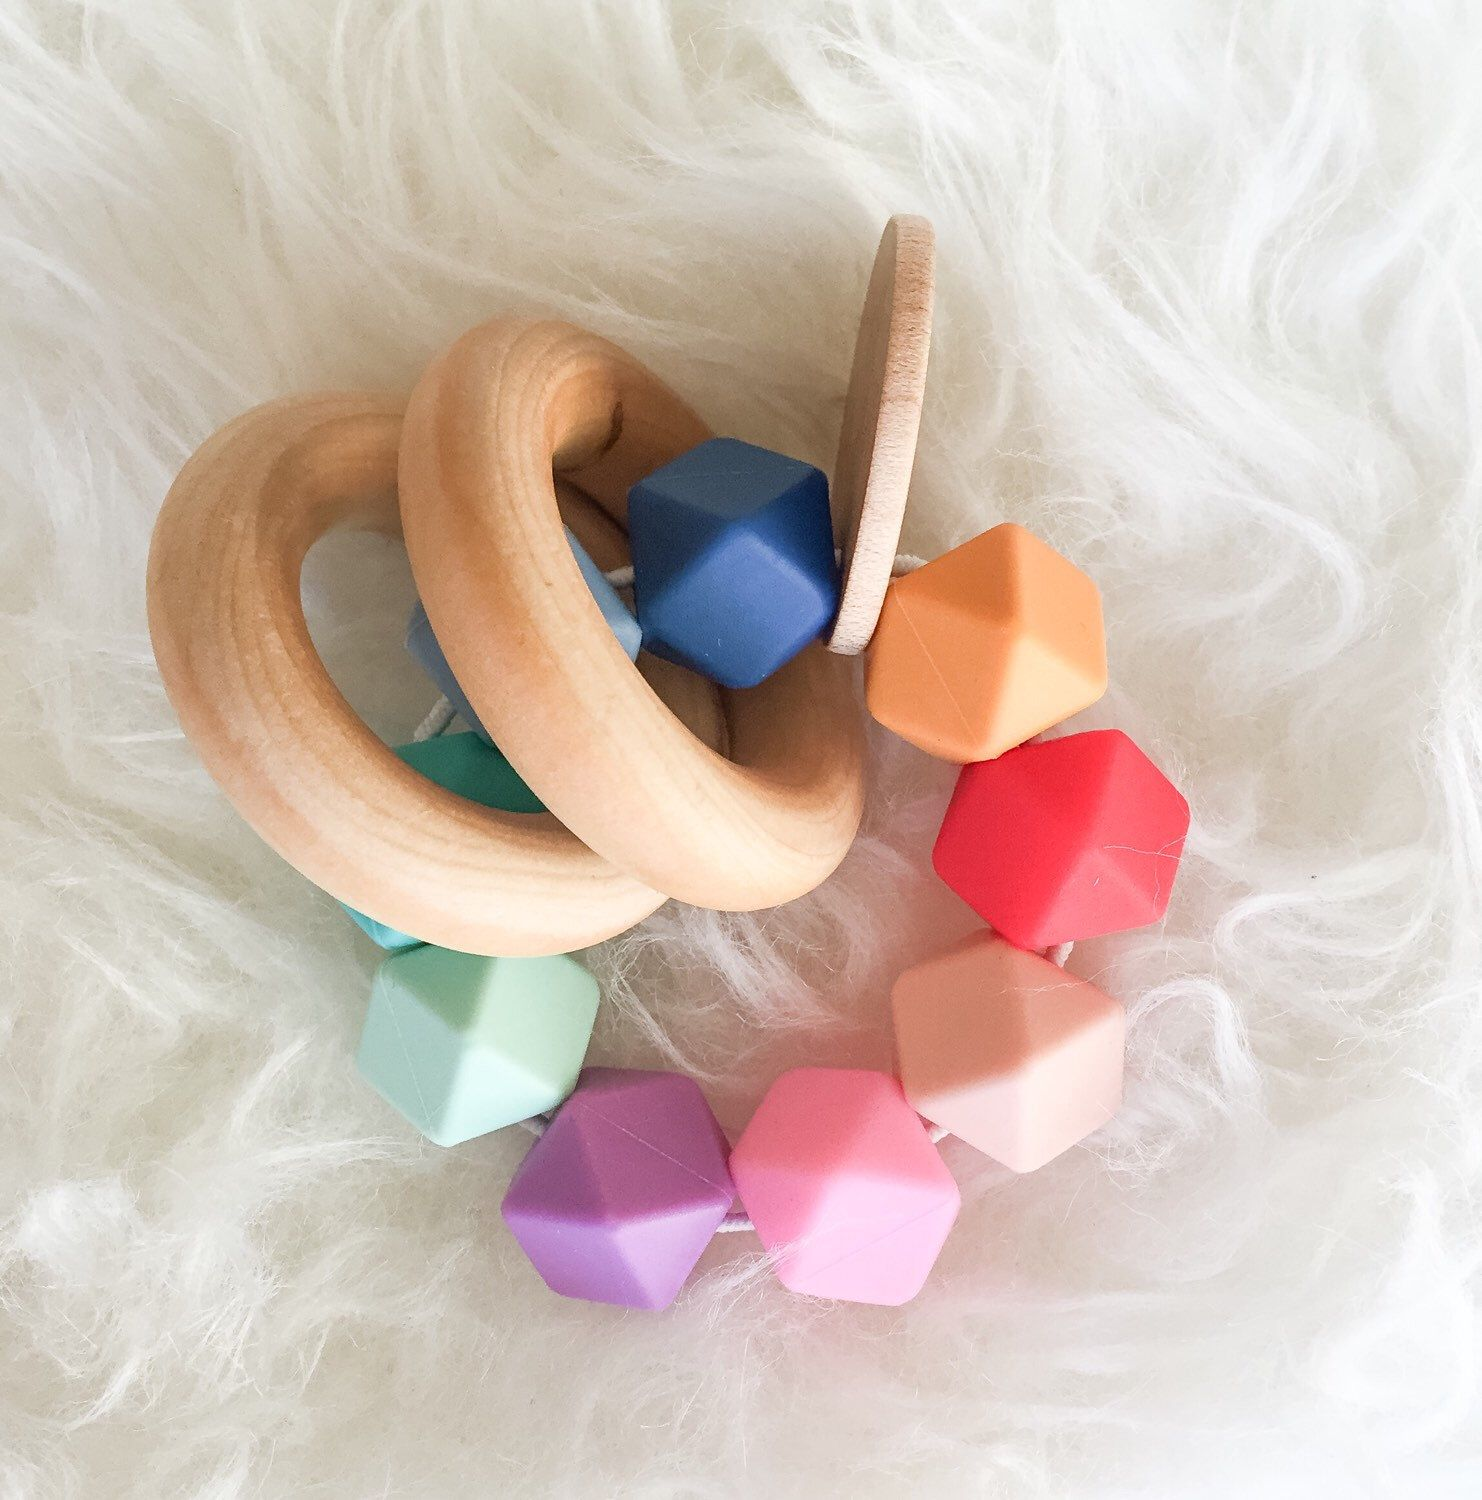 Baby Teething Toy Wooden Teether Rainbow Teether Silicone Bead